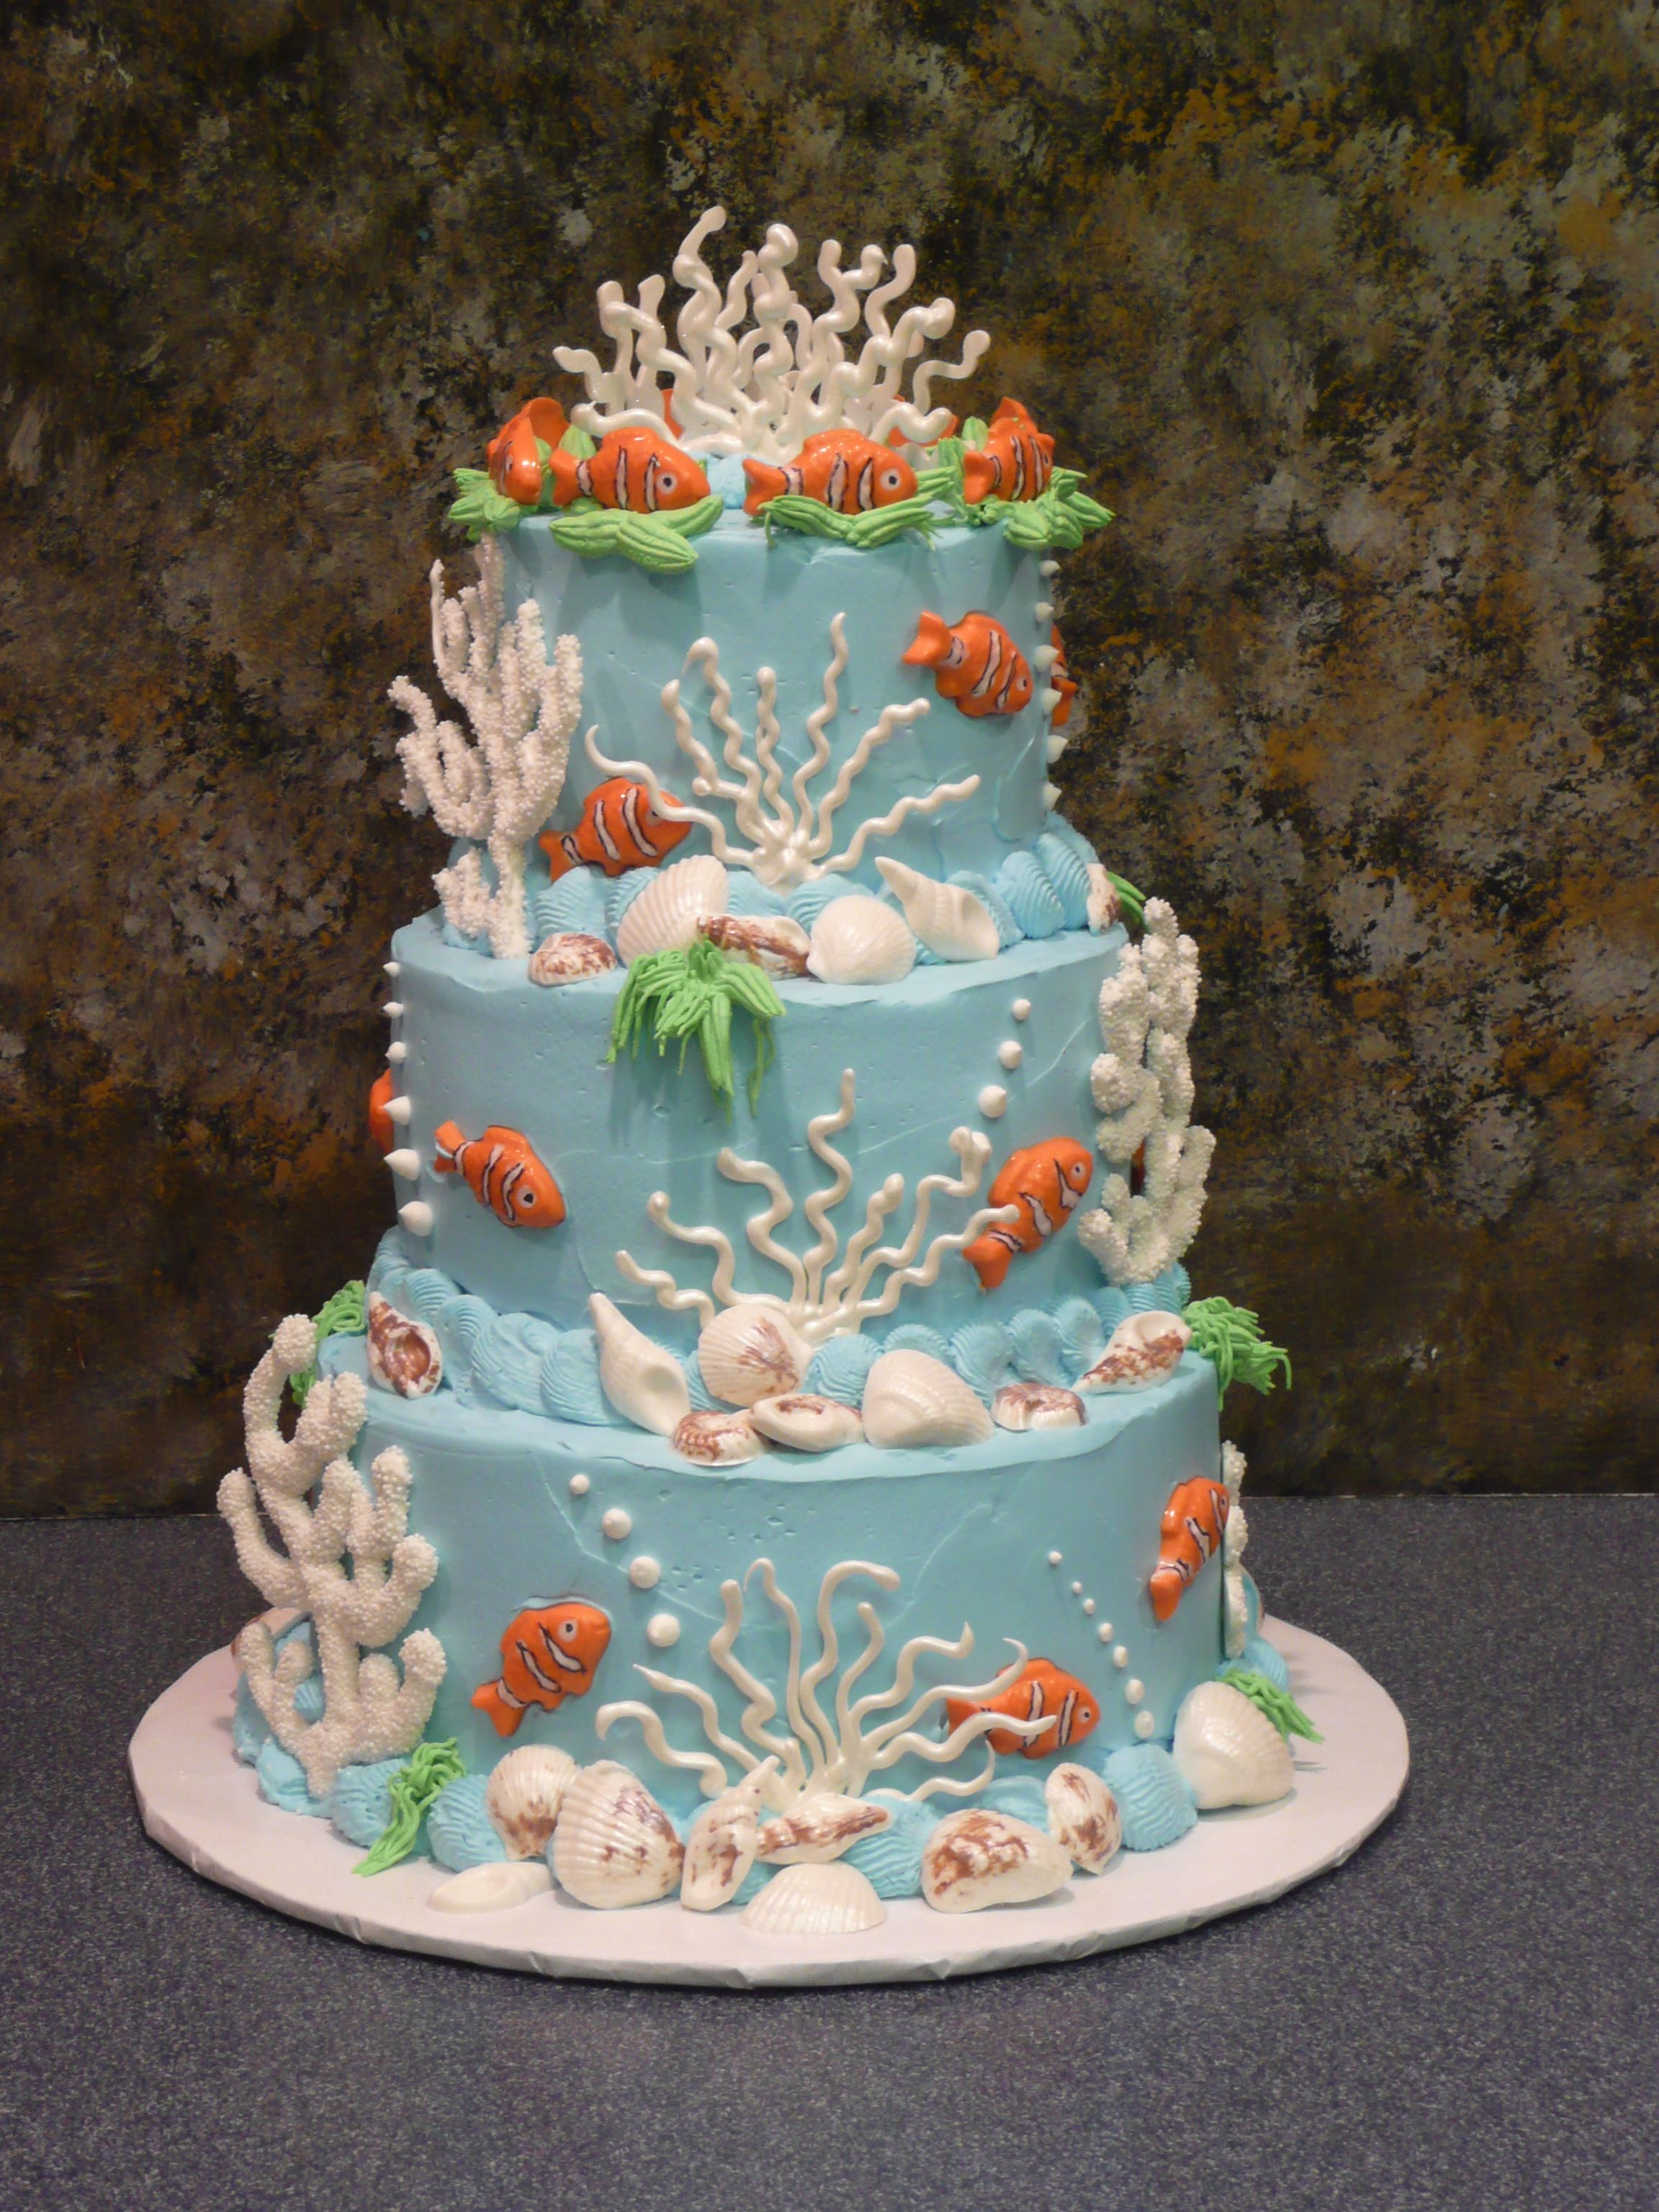 Undersea Cake With Fish Shells And Coral